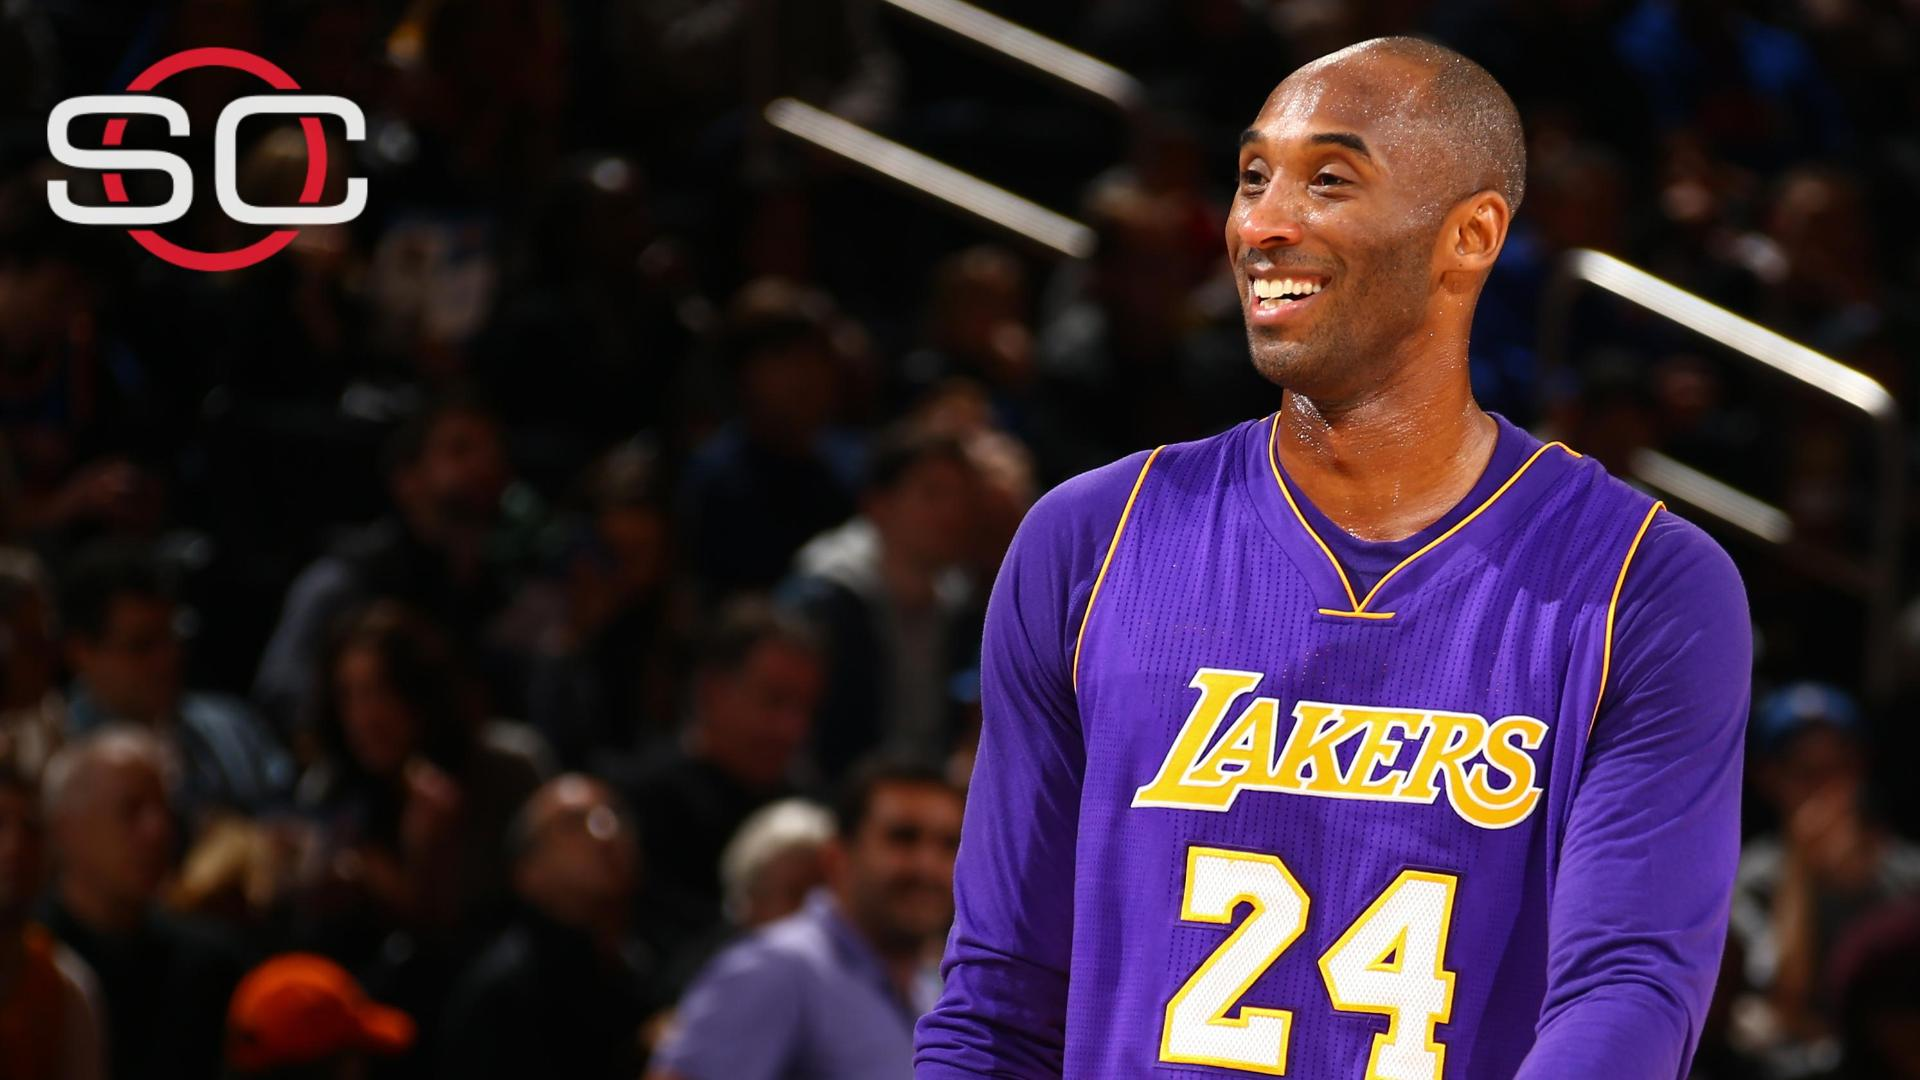 Pau Gasol Metta World Peace and more reaction to news of Kobe 1920x1080